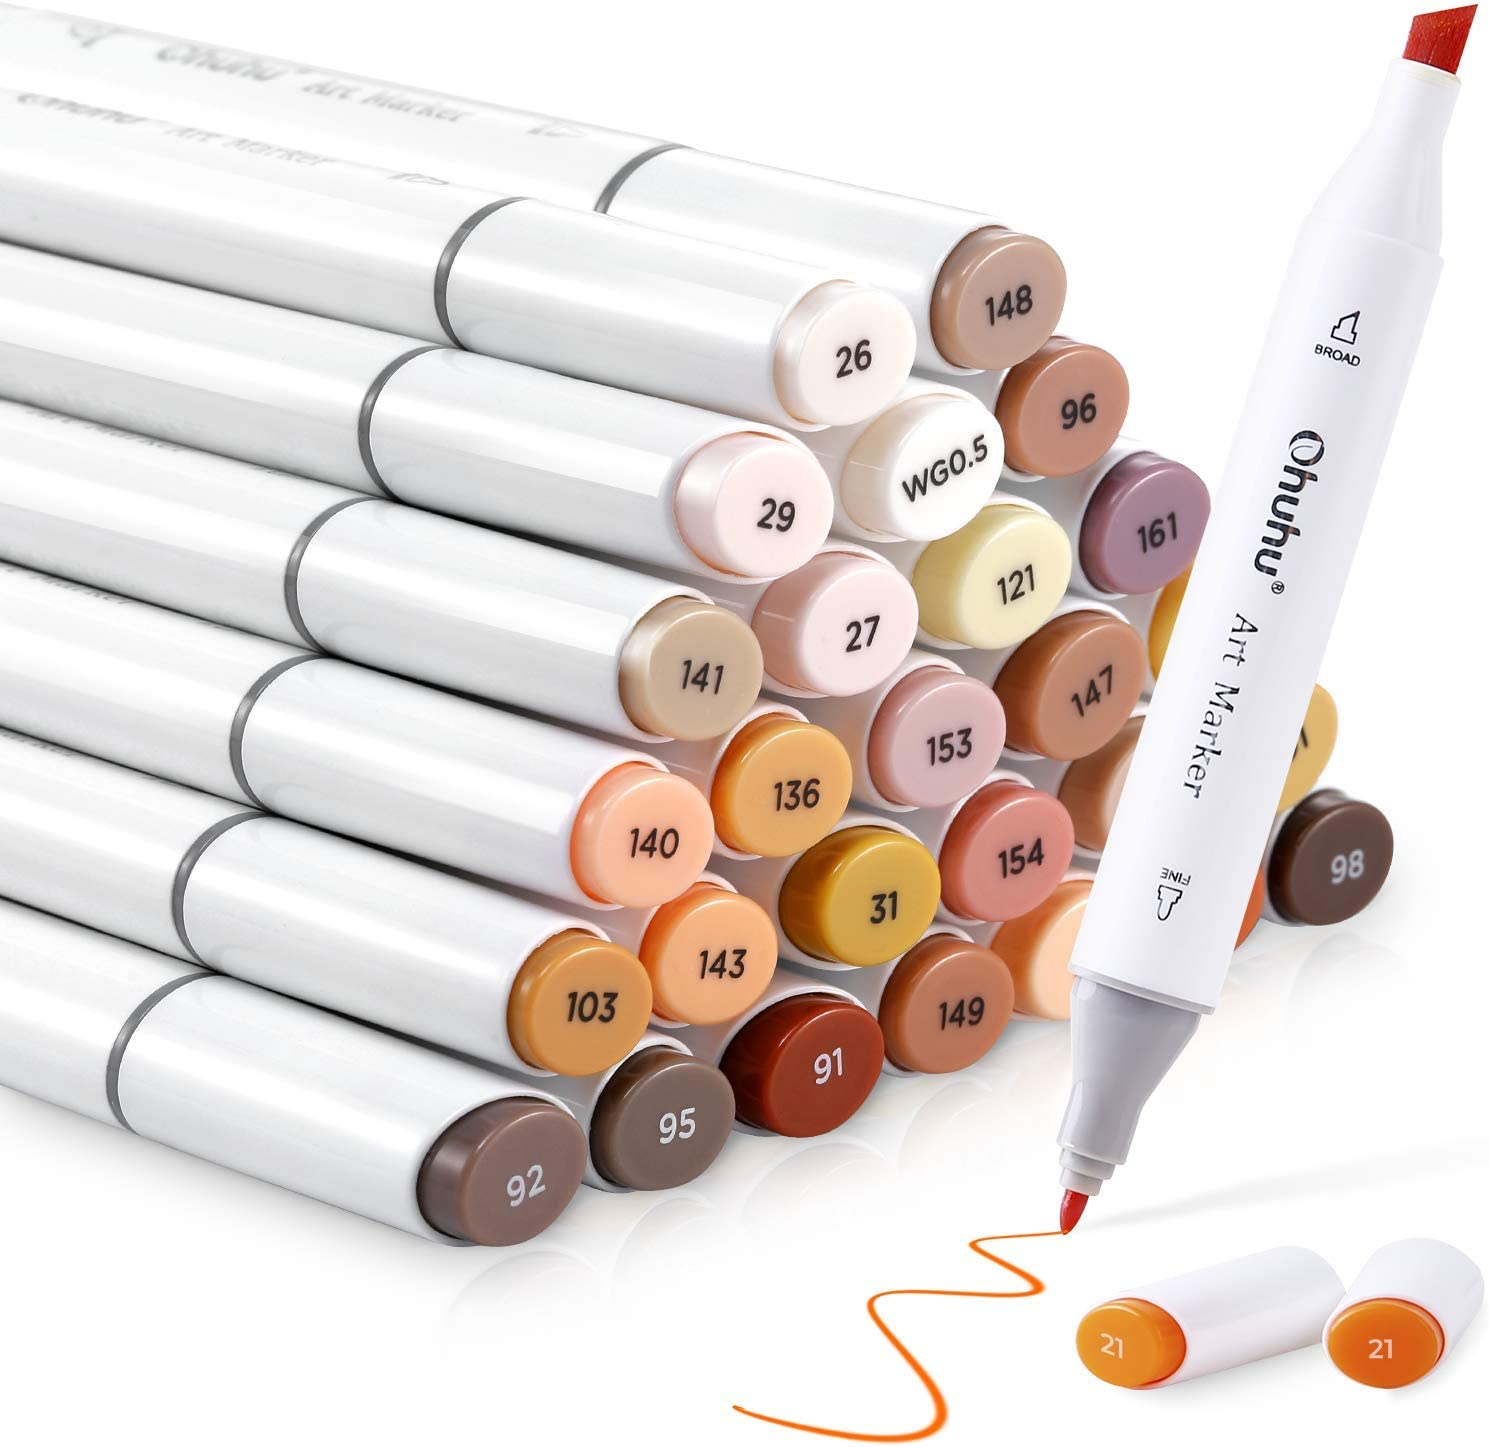 36 Skin-Tone Colors Alcohol Markers, Ohuhu Double Tipped Sketch Art Marker, Chisel & Fine, Alcohol-based Markers for Kids and Adults' Coloring Illustration, Comes w/ 1 Colorless Alcohol Marker Blender